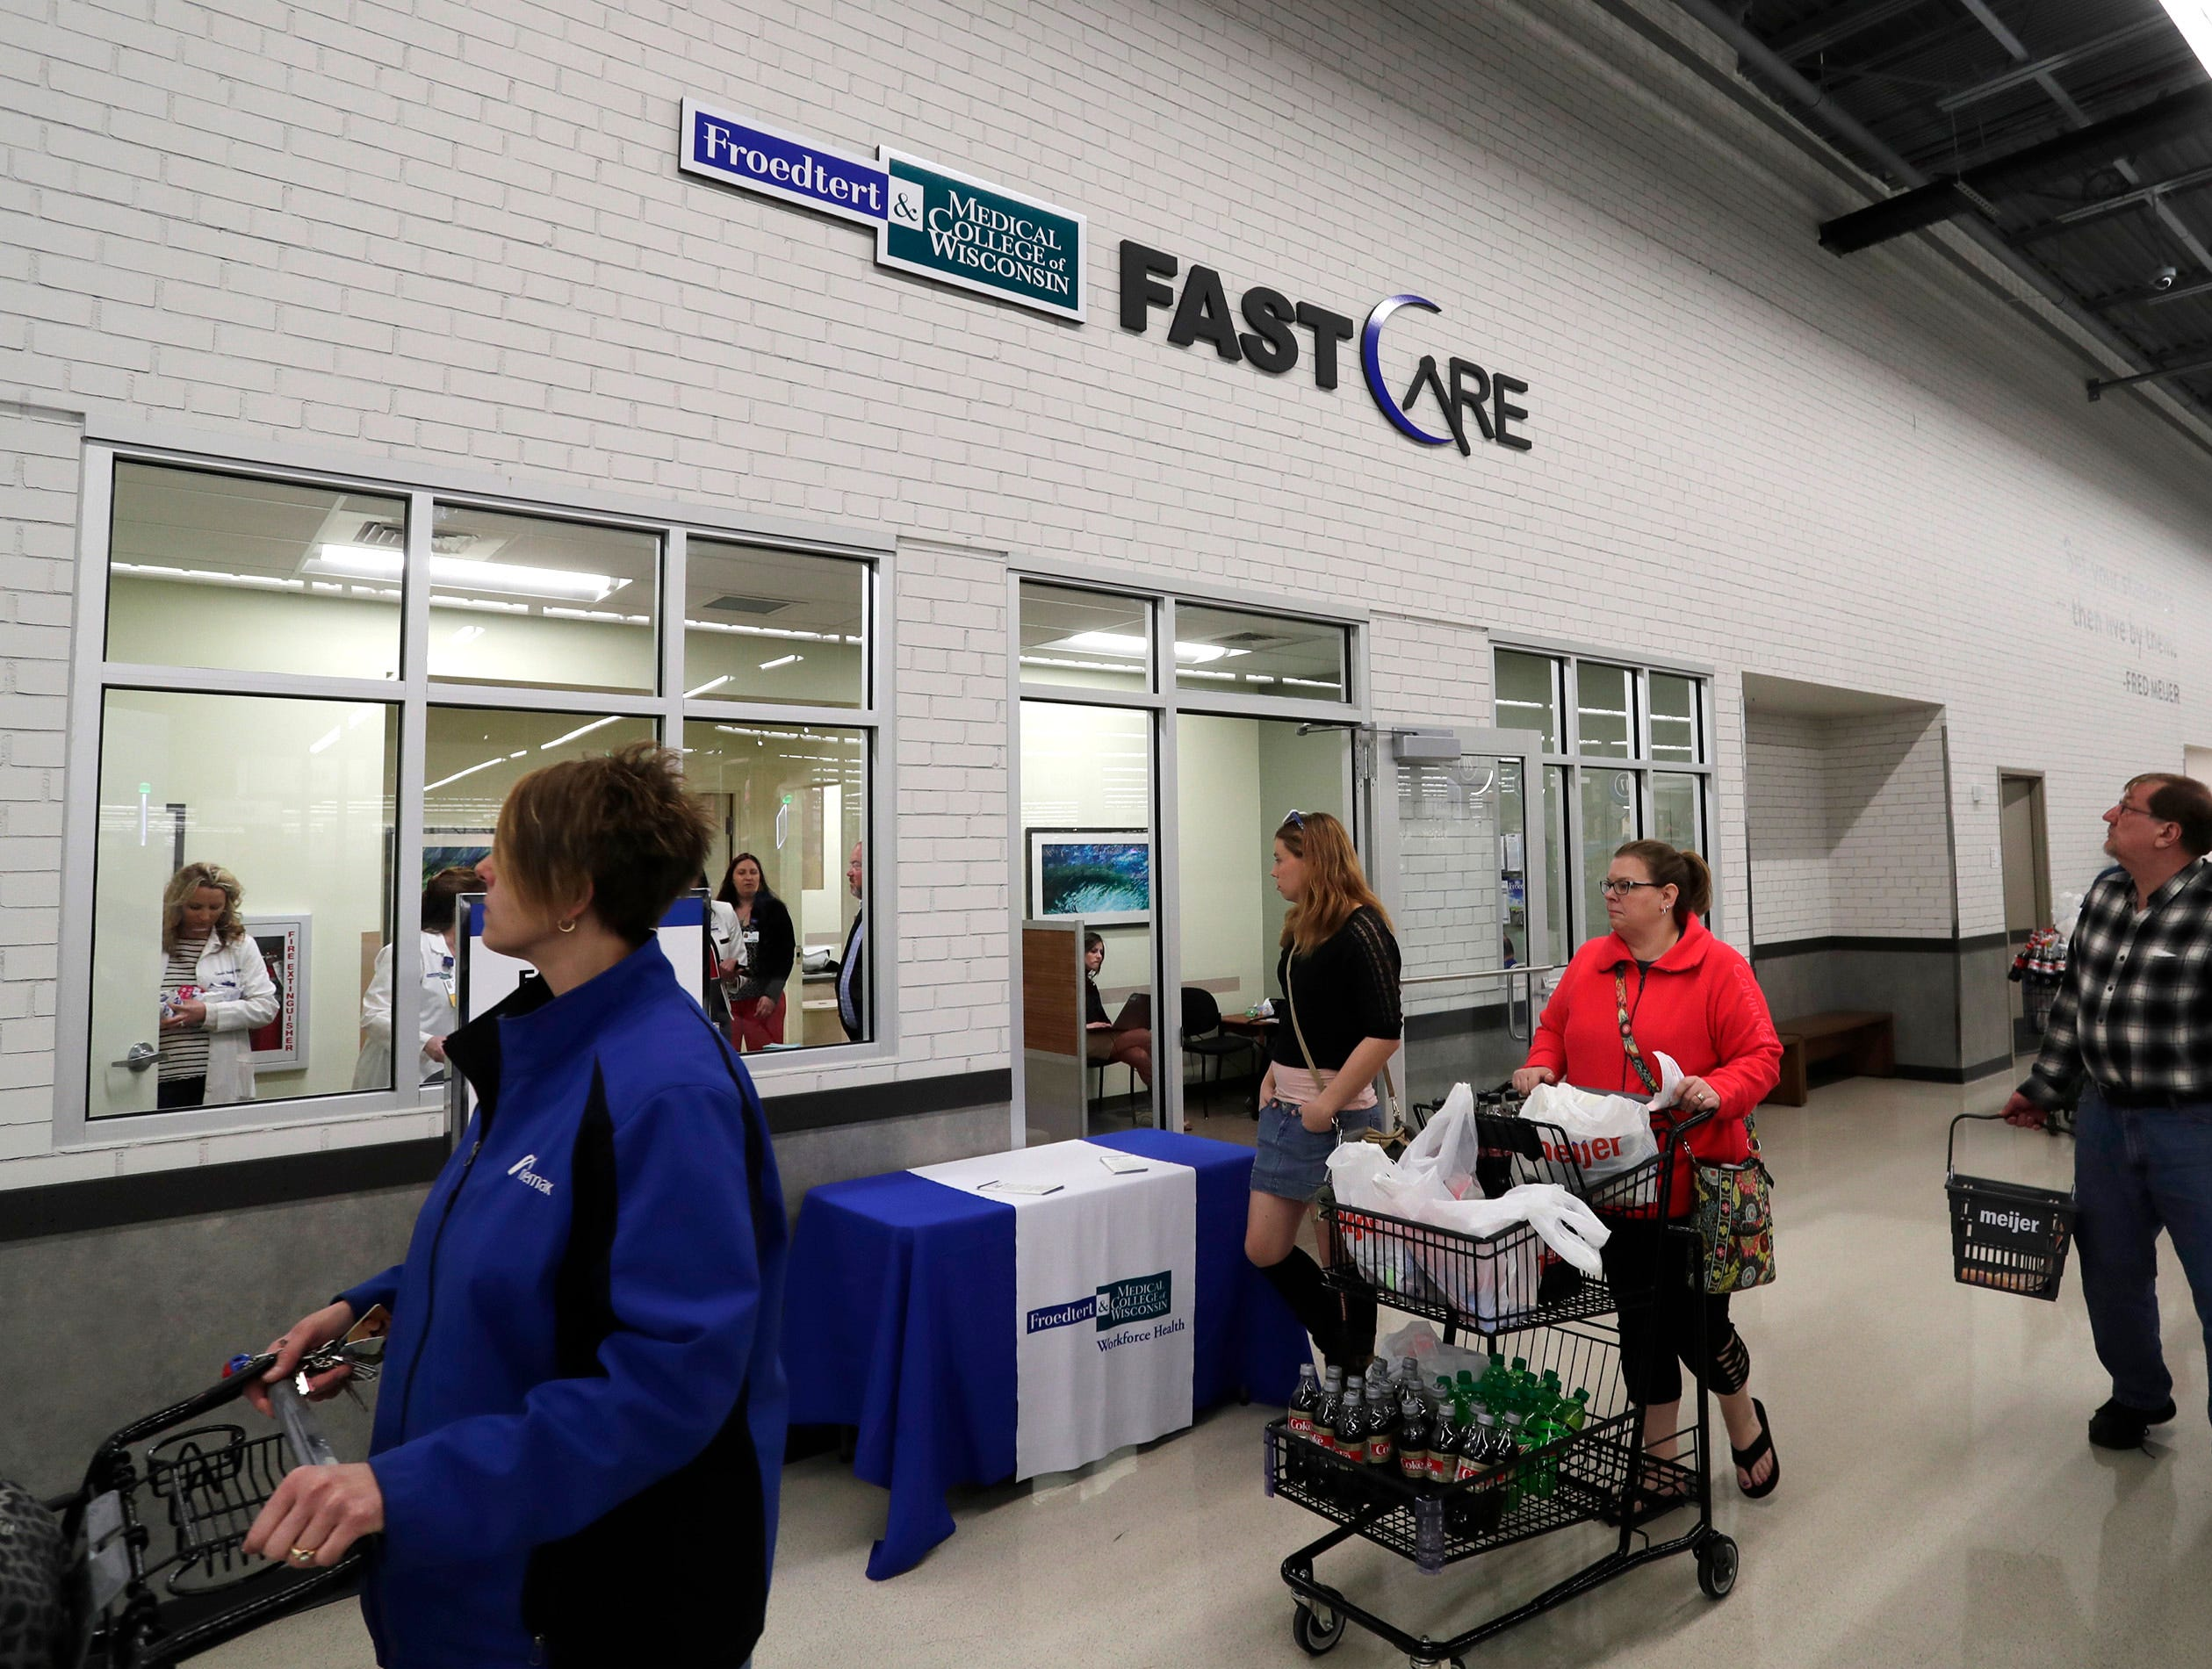 People walk past the Froedtert Fast Care at Meijer, Thursday April 25, 2019, in Sheboygan, Wis. The 155,000-square-foot supercenter has 300 employees on opening day.